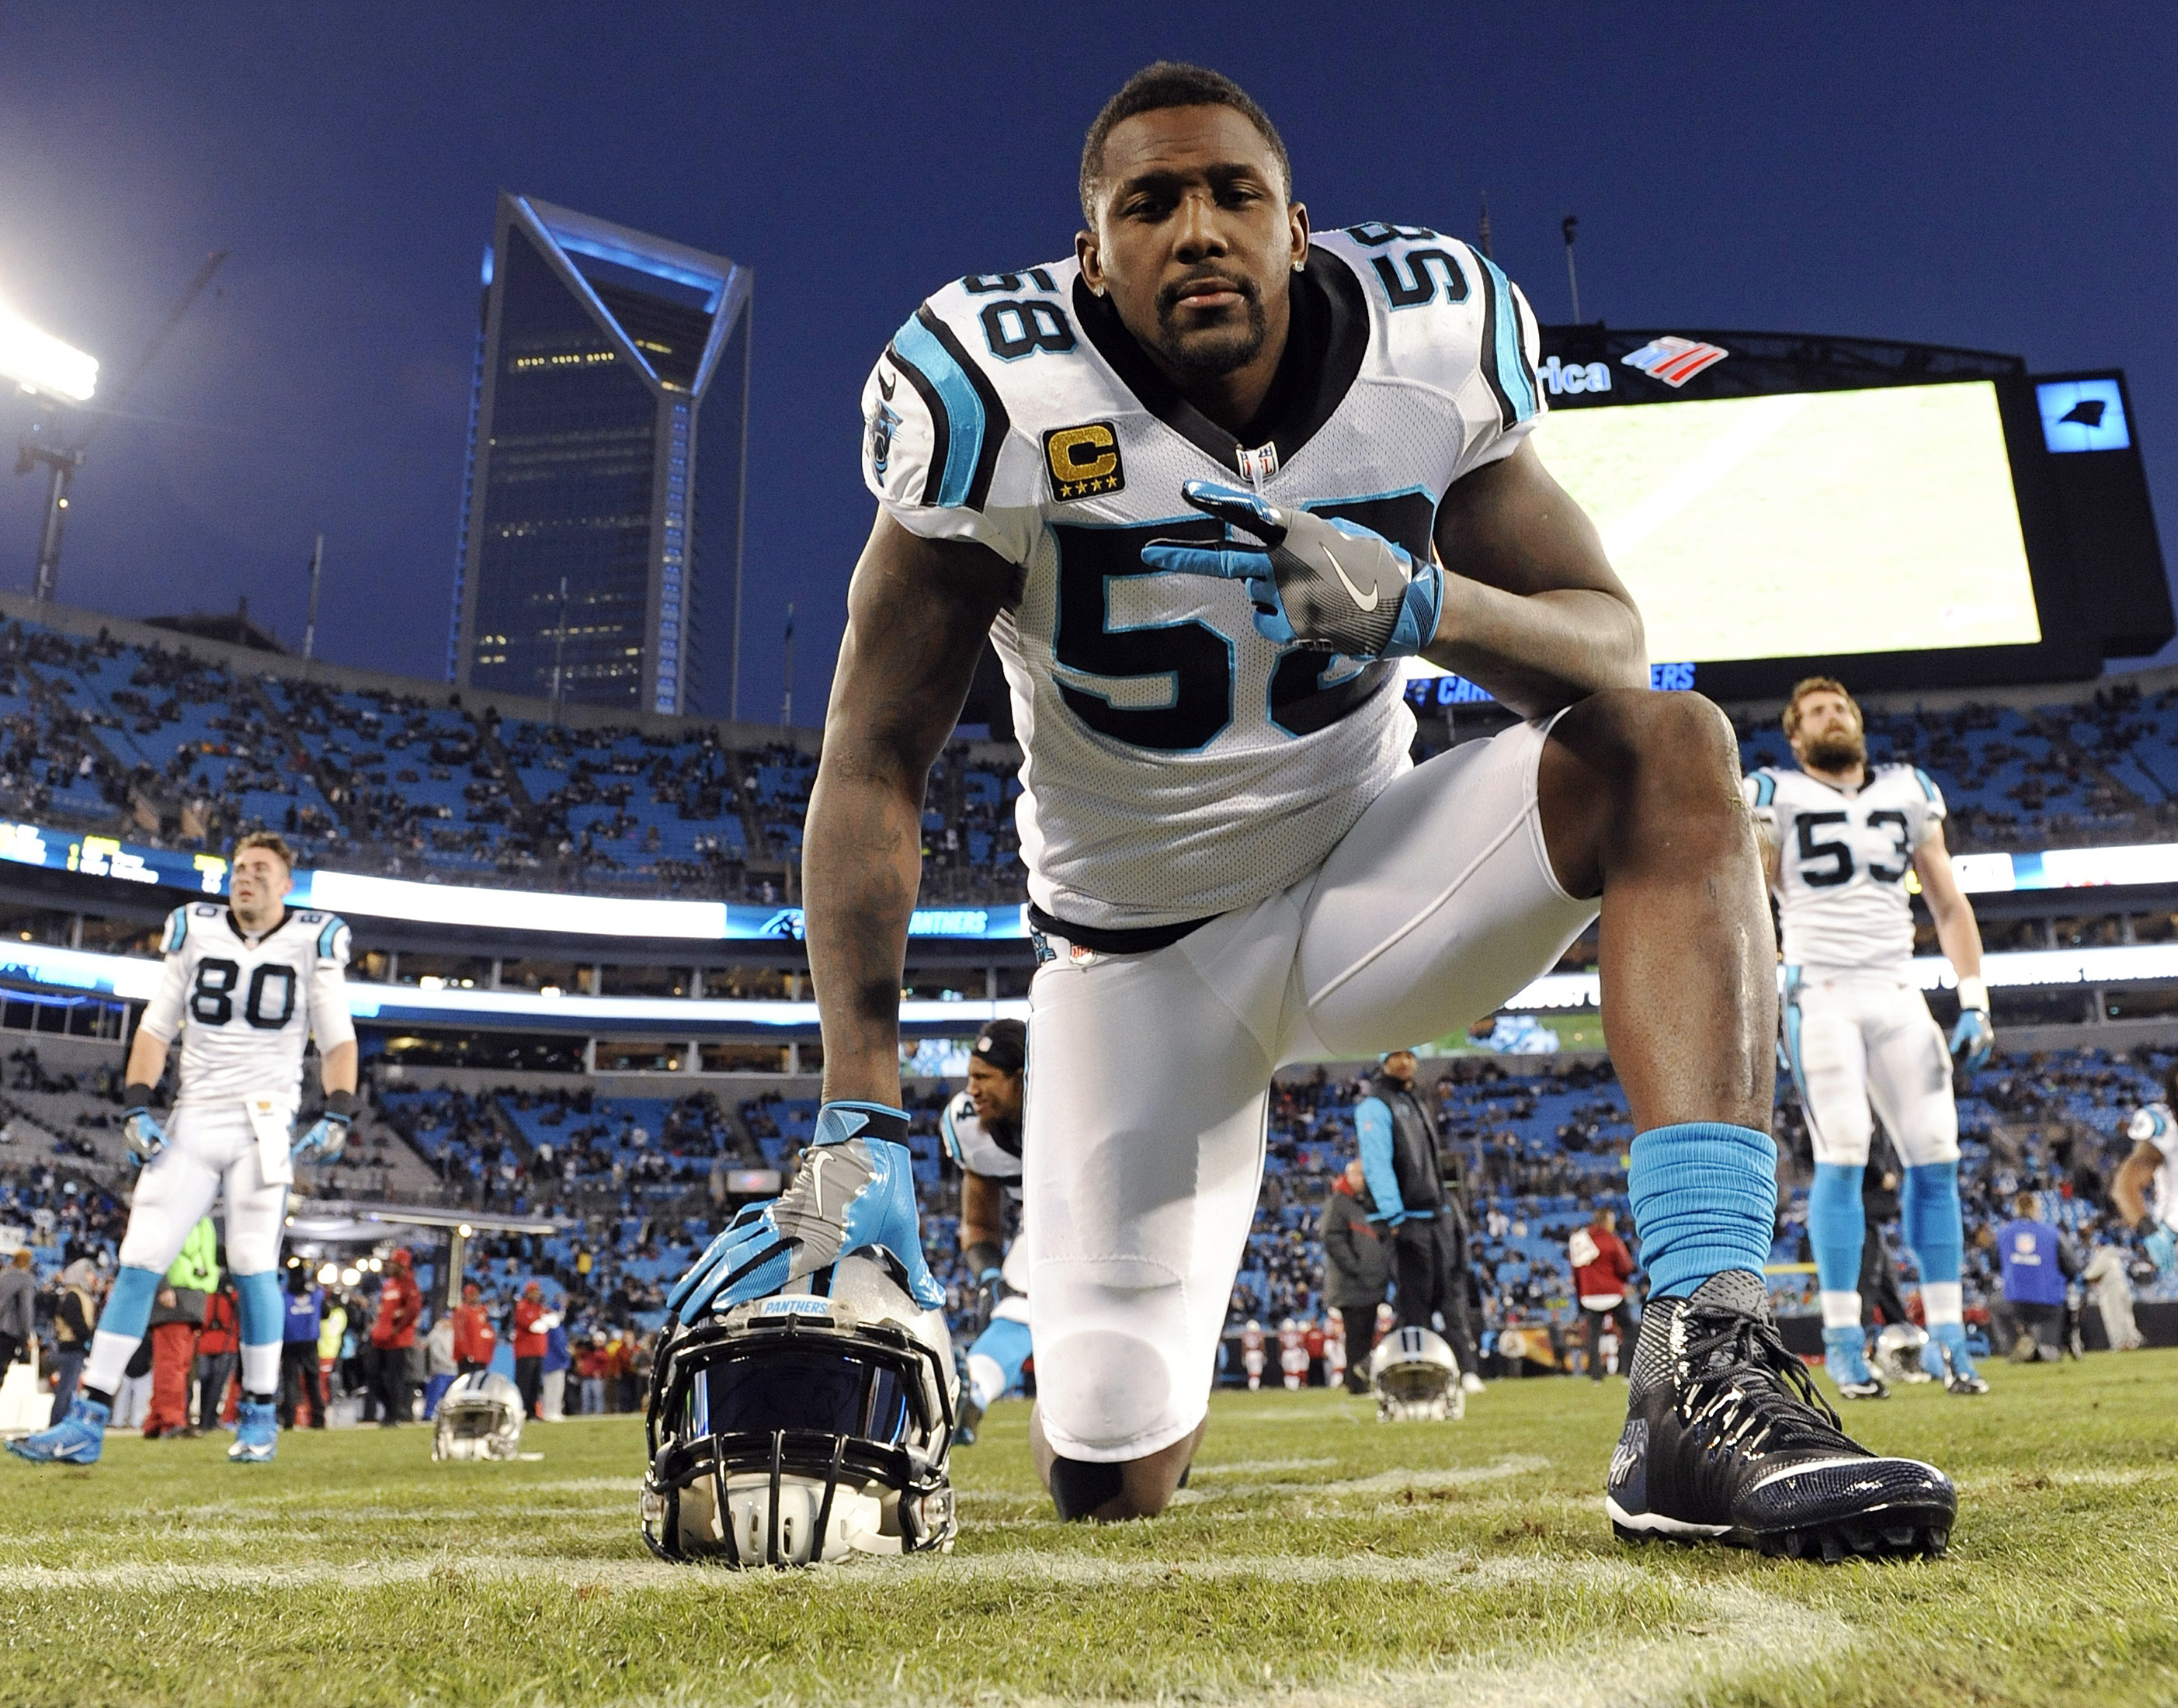 Carolina Panthers' Thomas Davis warms up before the NFL football NFC Championship game against the Arizona Cardinals Sunday, Jan. 24, 2016, in Charlotte, N.C. (AP Photo/Mike McCarn)